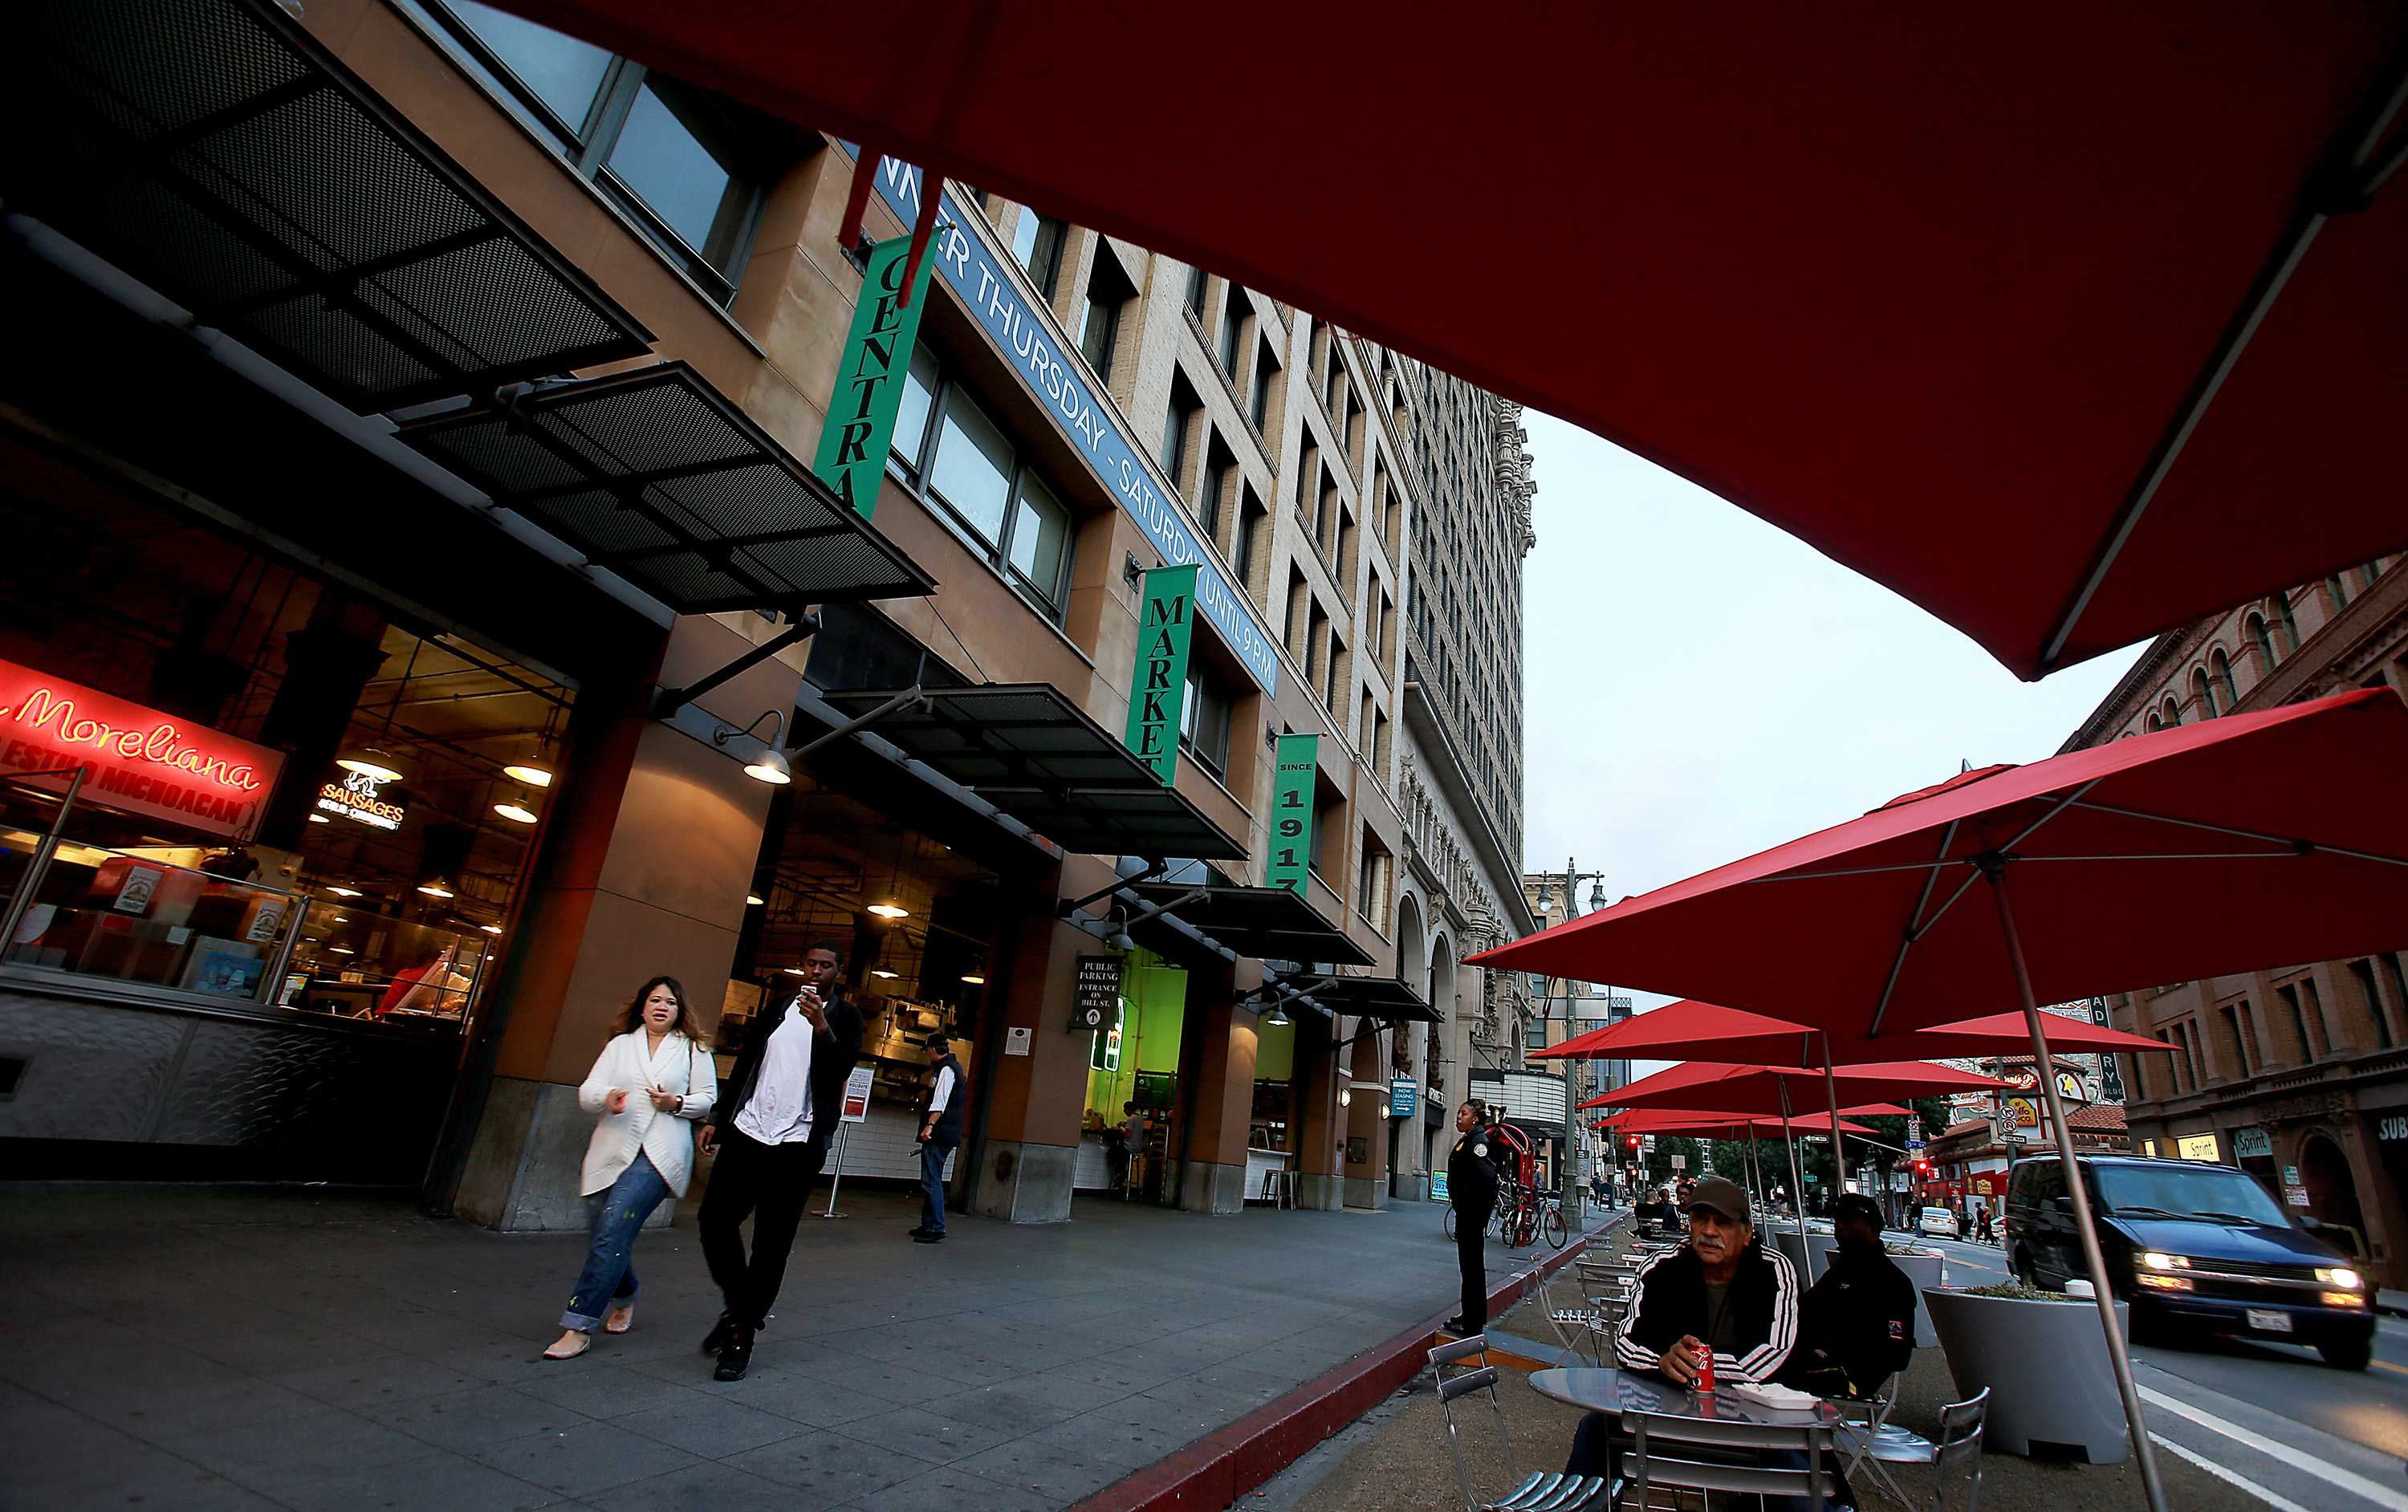 Umbrellas+and+chairs+for+dining+along+Broadway+in+front+of+the+Grand+Central+Market+in+downtown+Los+Angeles.++%28Luis+Sinco%2FLos+Angeles+Times%2FTNS%29